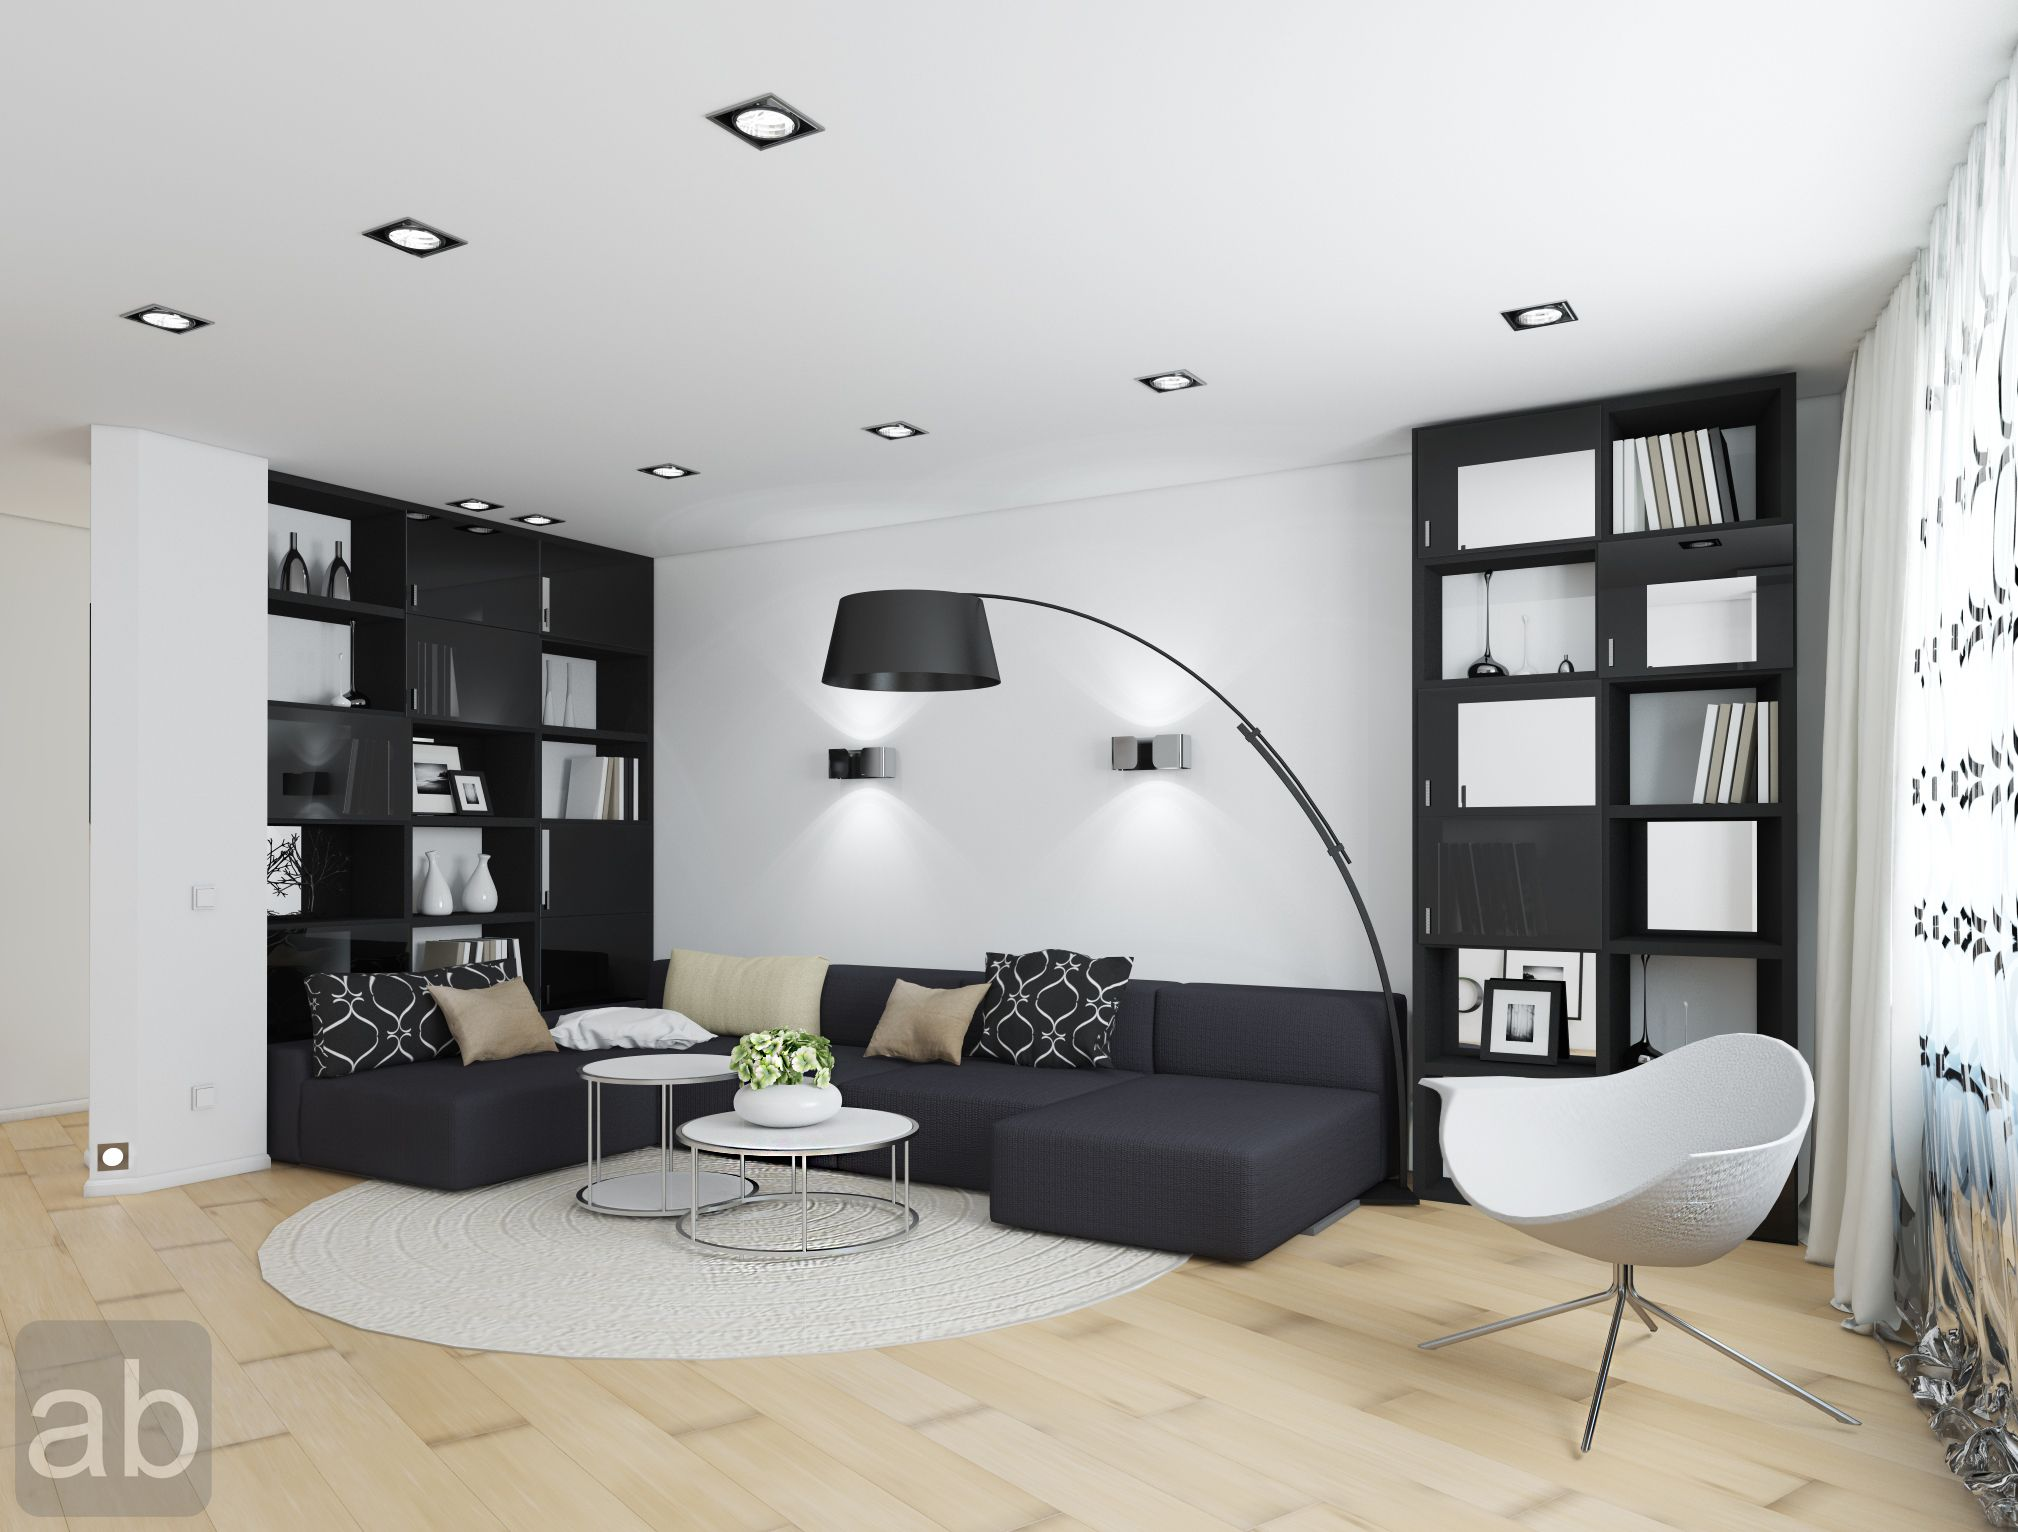 Rooms With Black Furniture Living Room Masculine Black Furniture Black And White Living Room Decor Black And